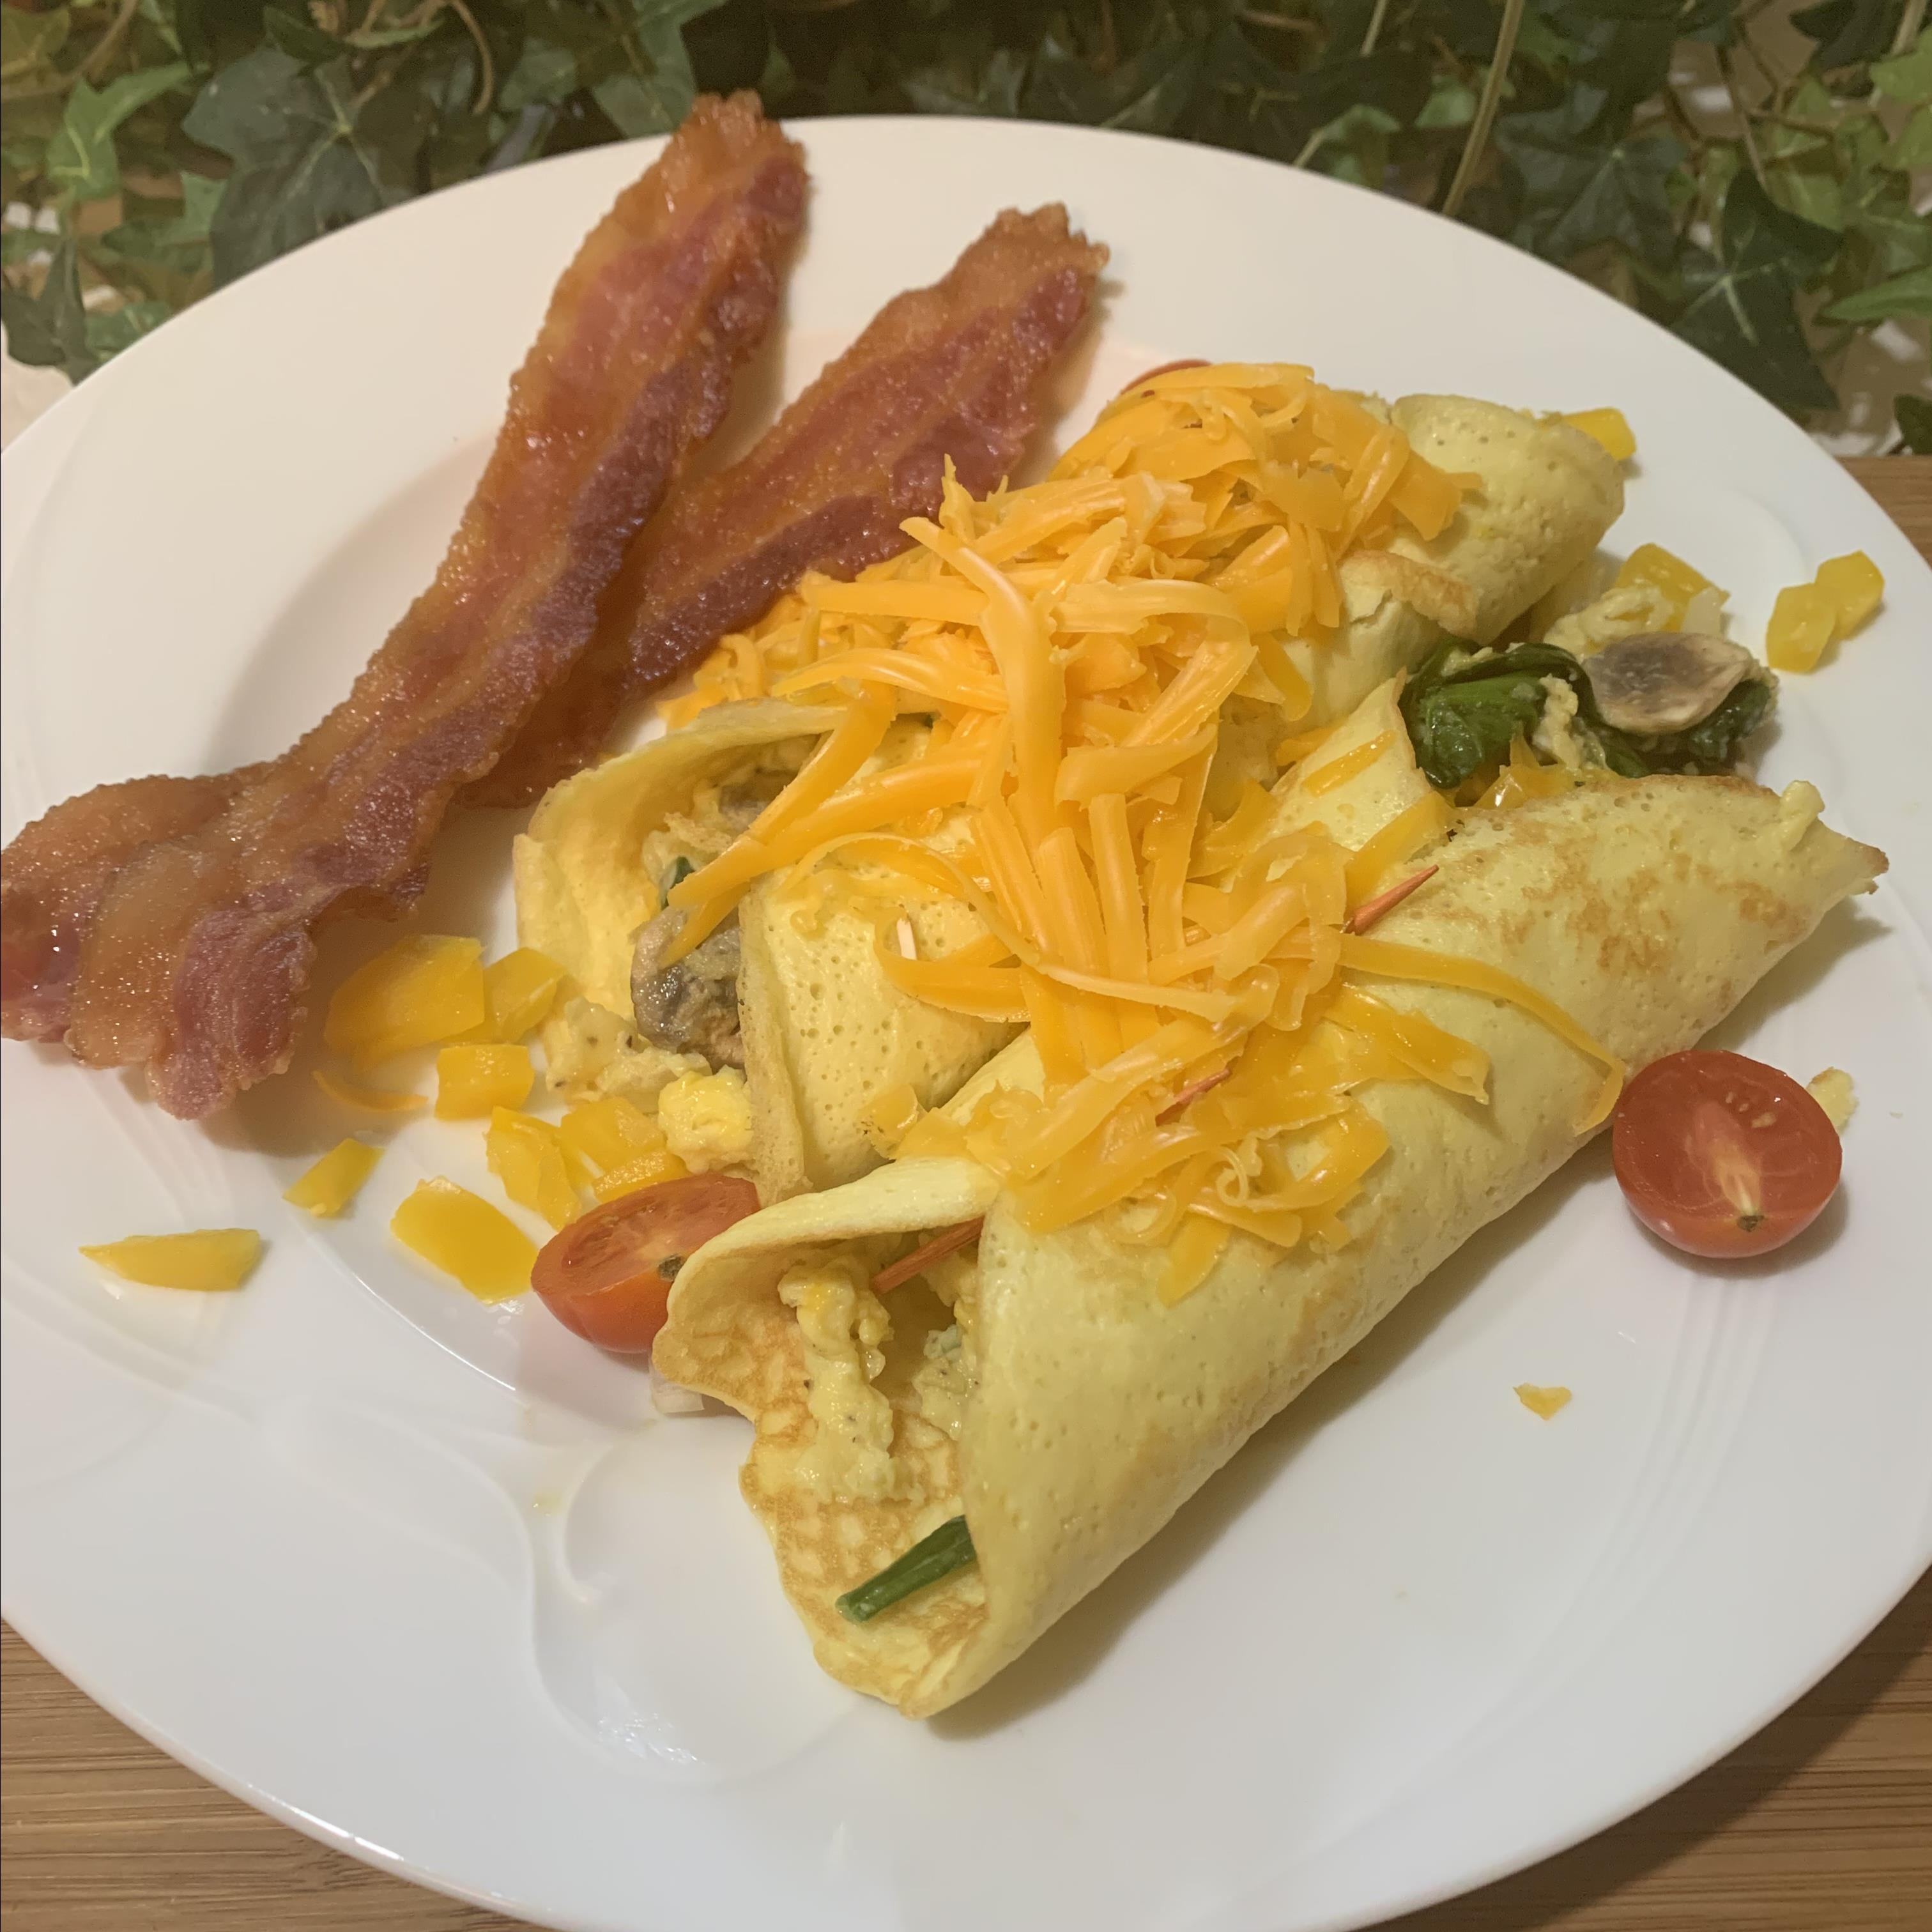 Low-Carb Savory Breakfast Crepes